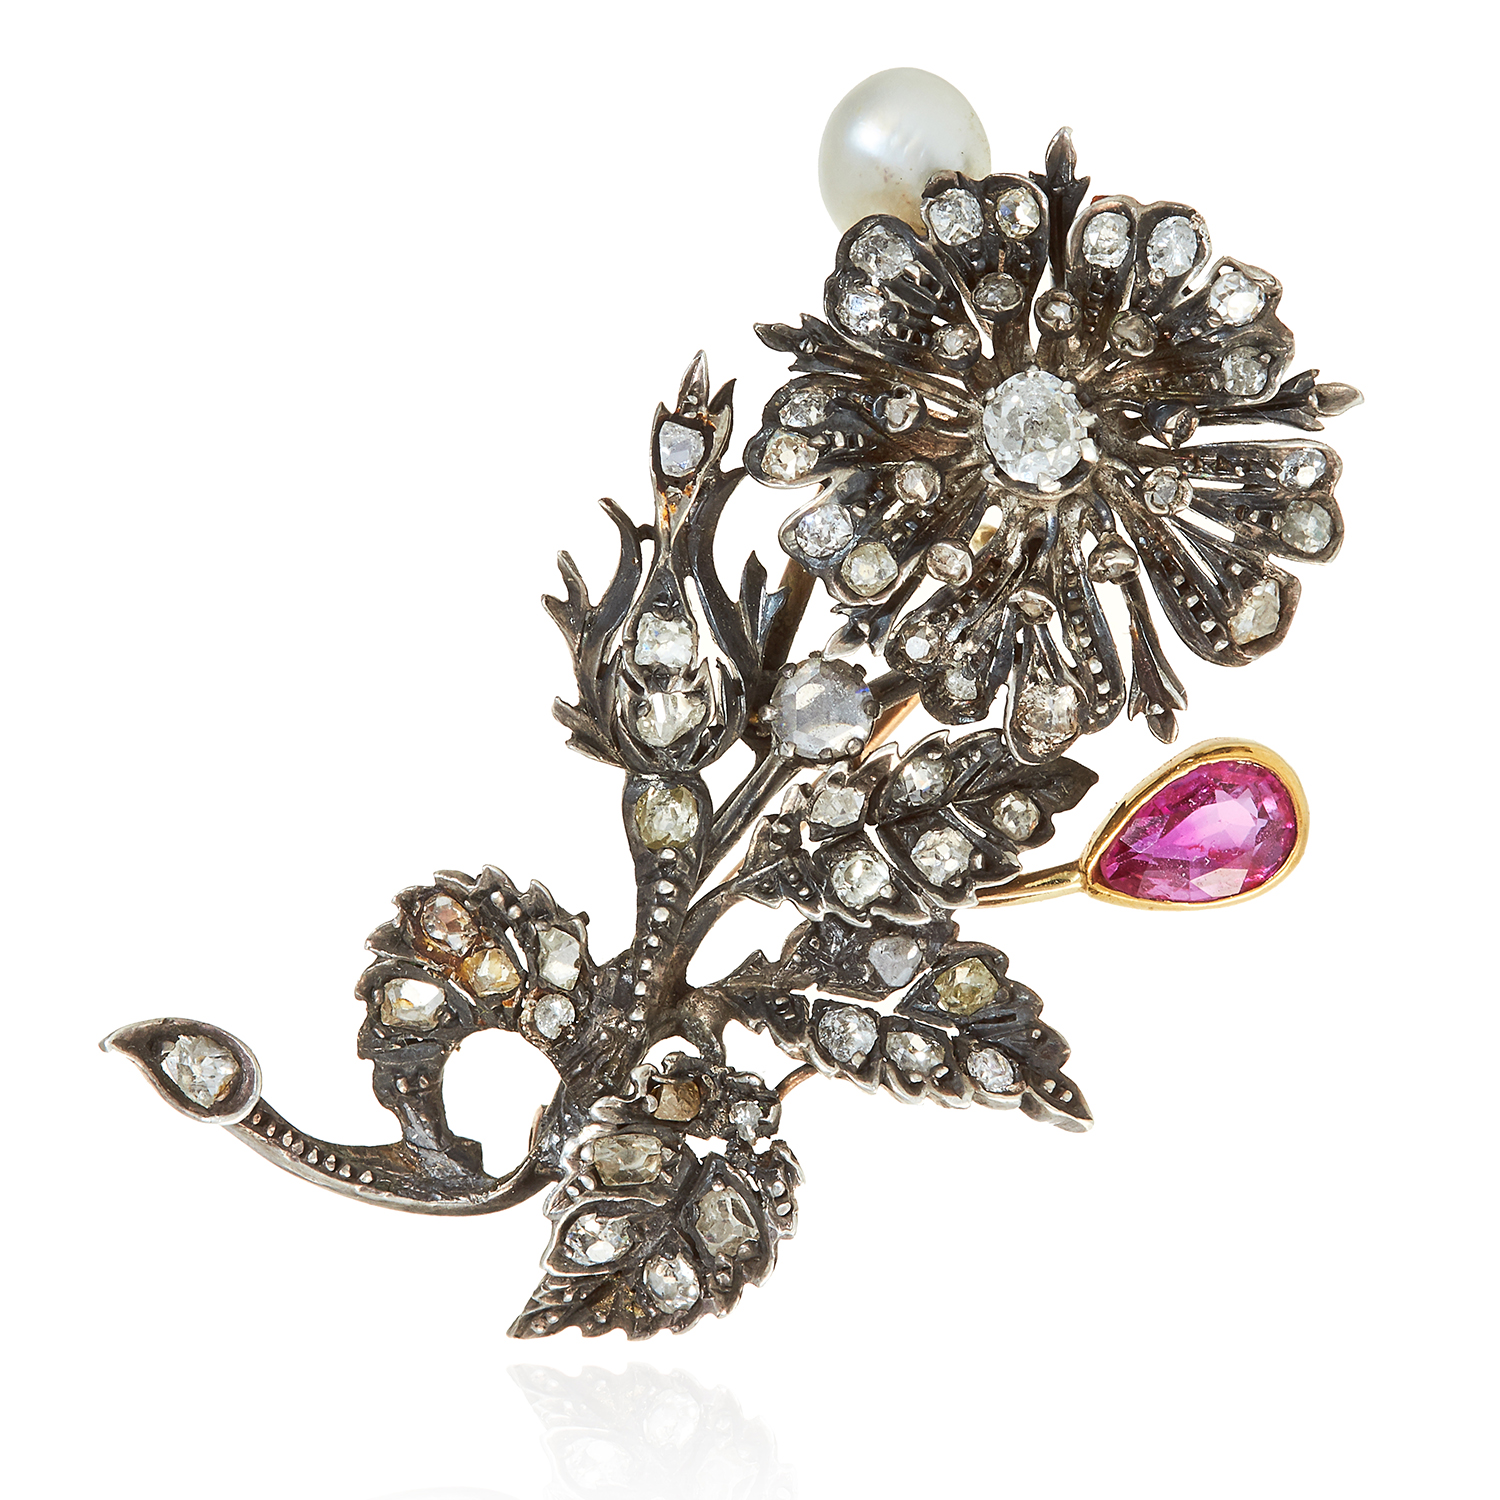 Los 354 - A BURMA NO HEAT RUBY, NATURAL PEARL AND DIAMOND BROOCH, 19TH CENTURY in yellow gold and silver,